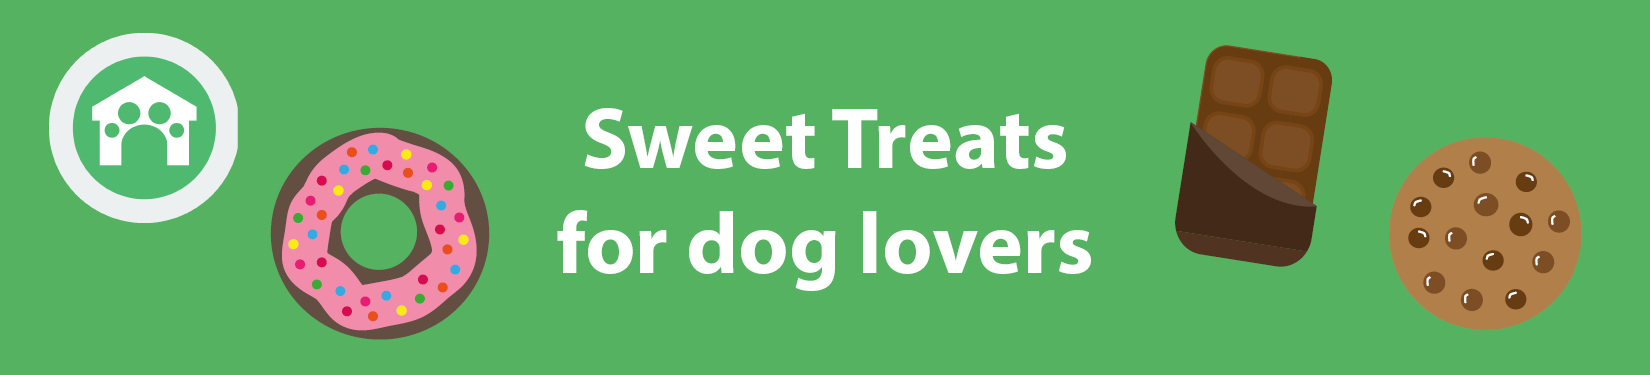 Sweet treat gifts for dog lovers header image